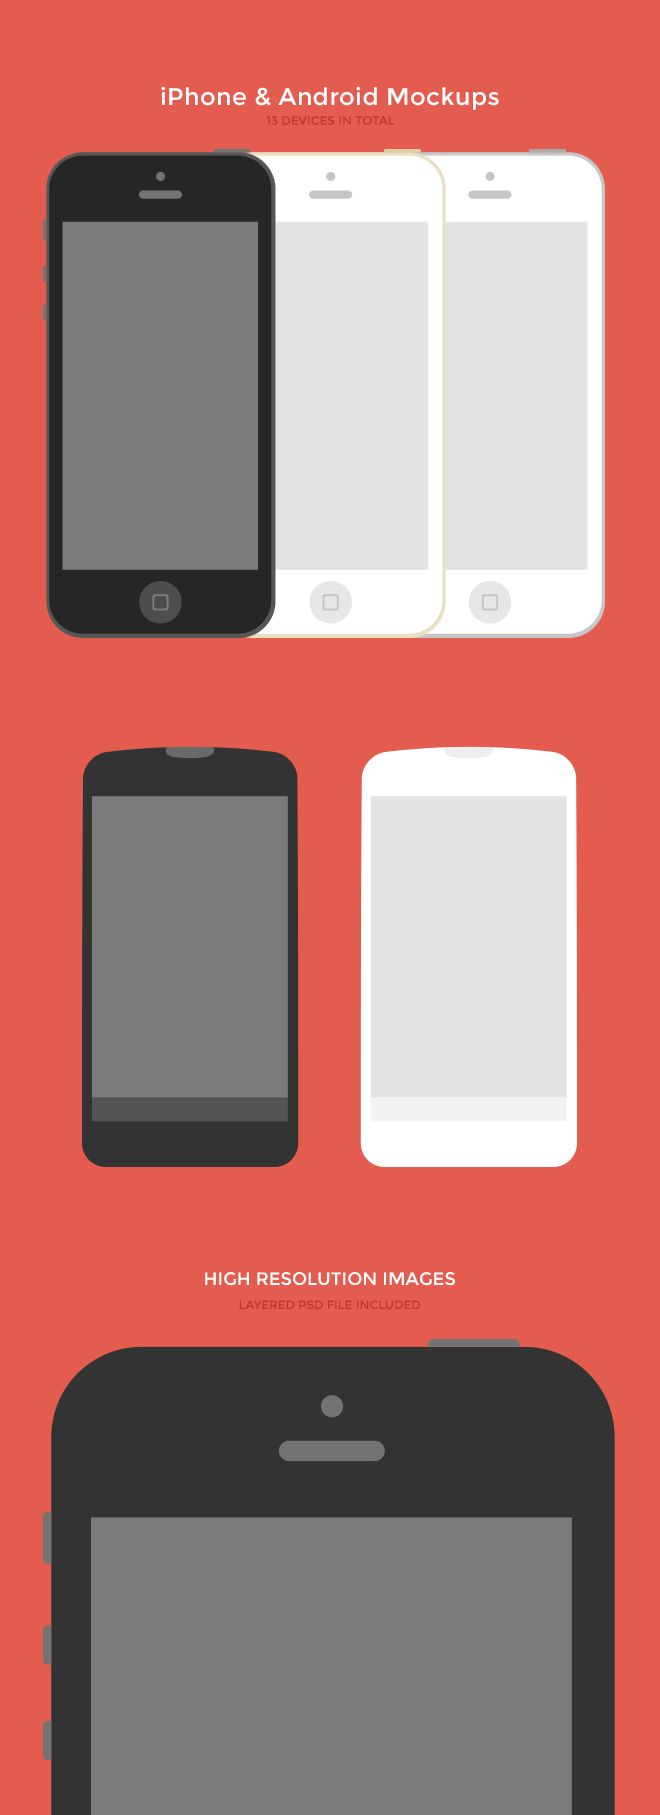 design deck | iPhone & Android Mockups (PSD)